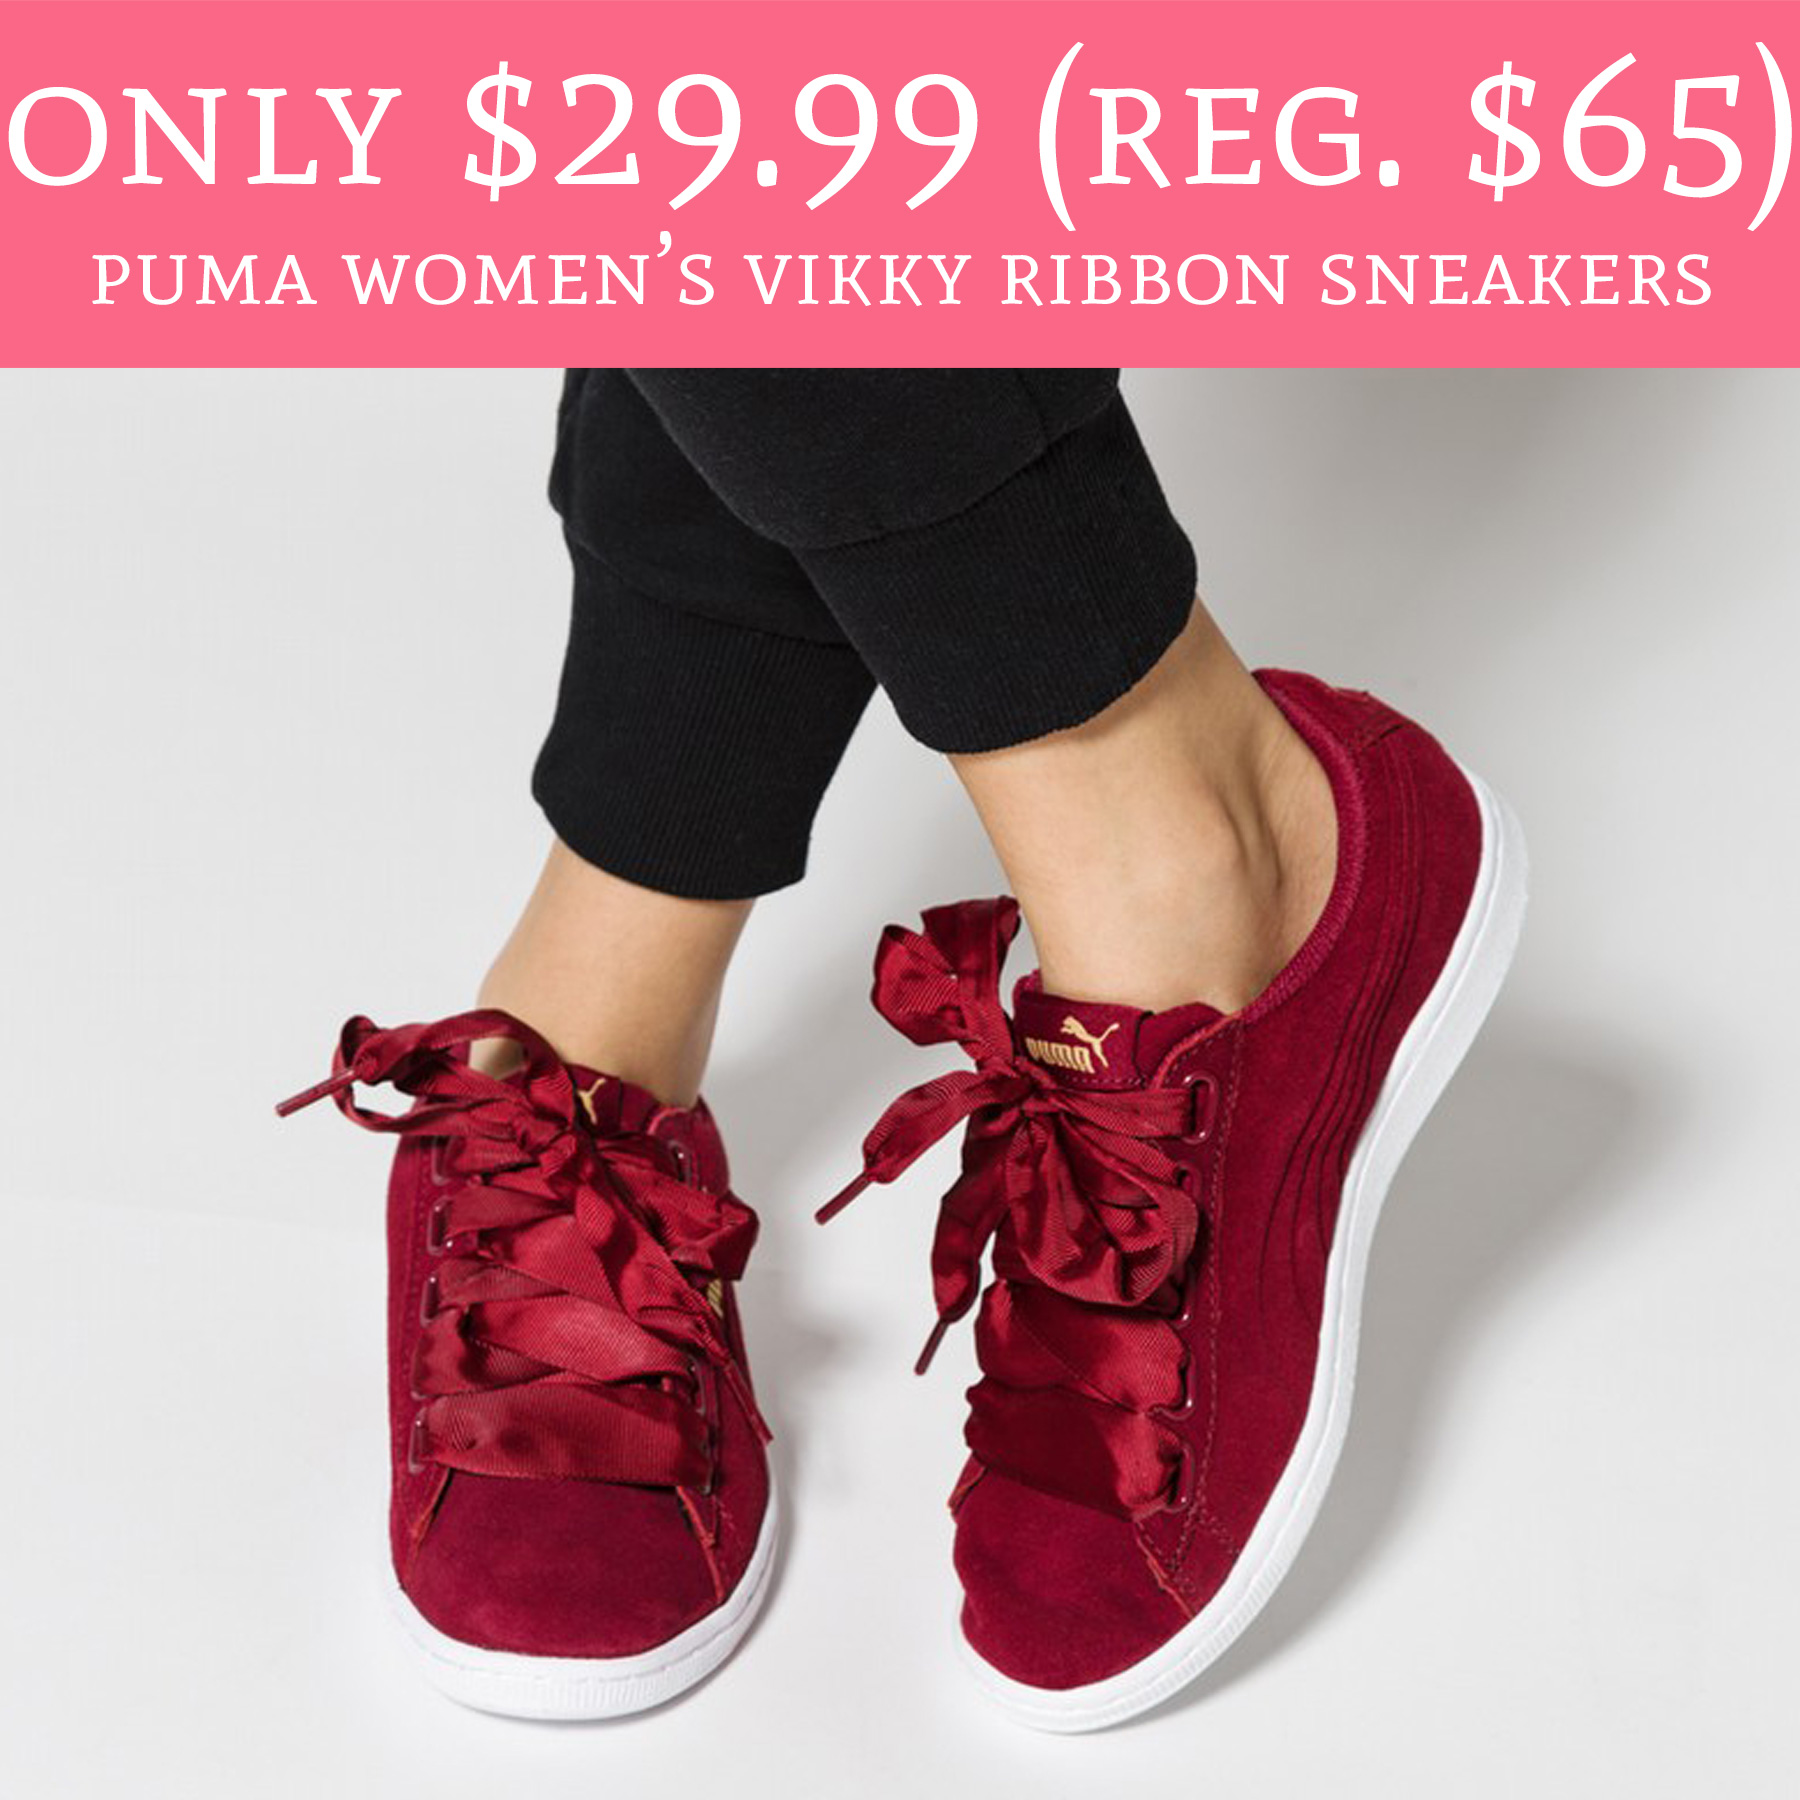 4e2582f422 Love these! Head over to Macy's.com where you can score Puma Women's Vikky  Ribbon Sneakers ...